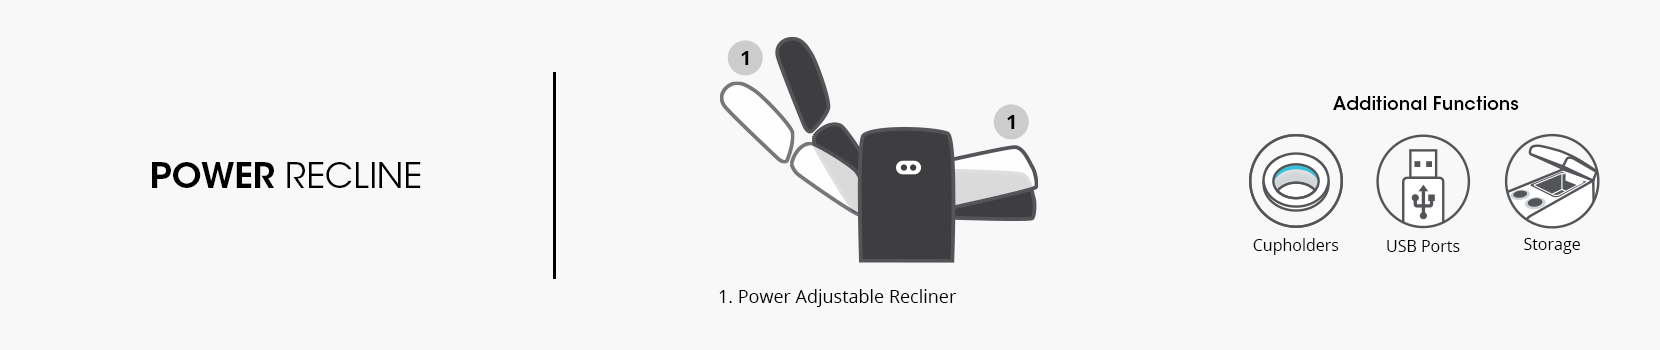 power recline. power adjustable recliner. additional functions cupholders, usb ports, storage